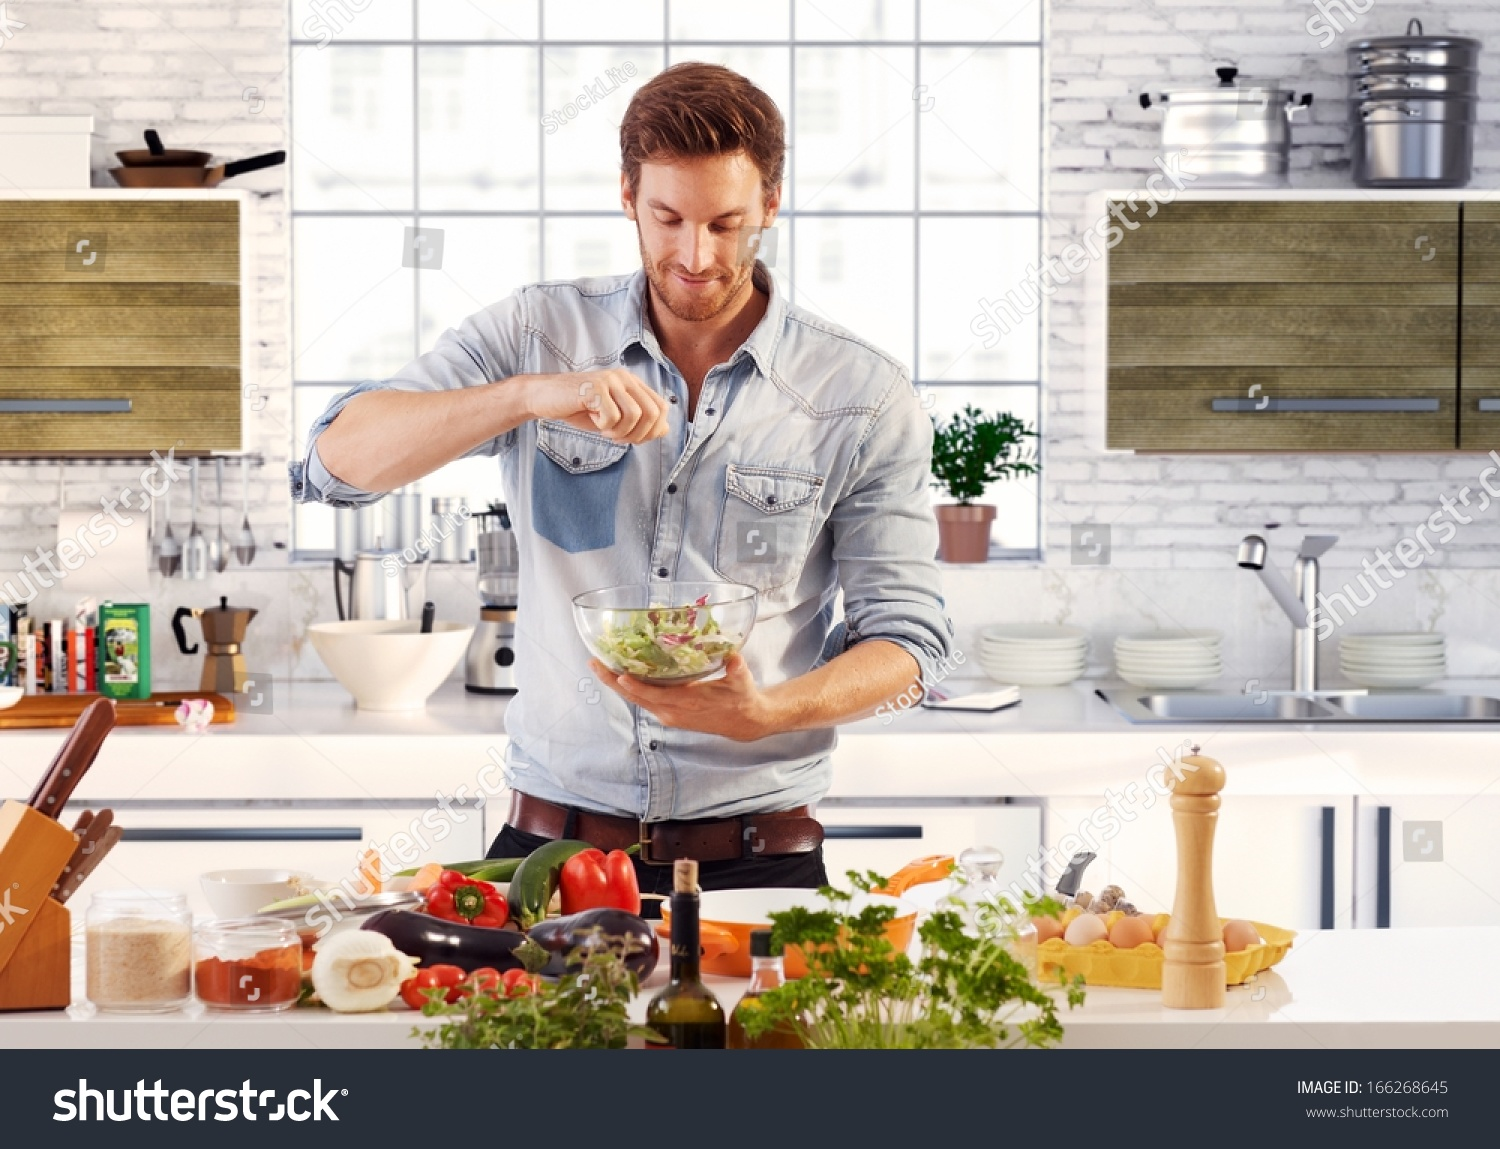 Handsome Man Cooking Home Preparing Salad Stock Photo ...